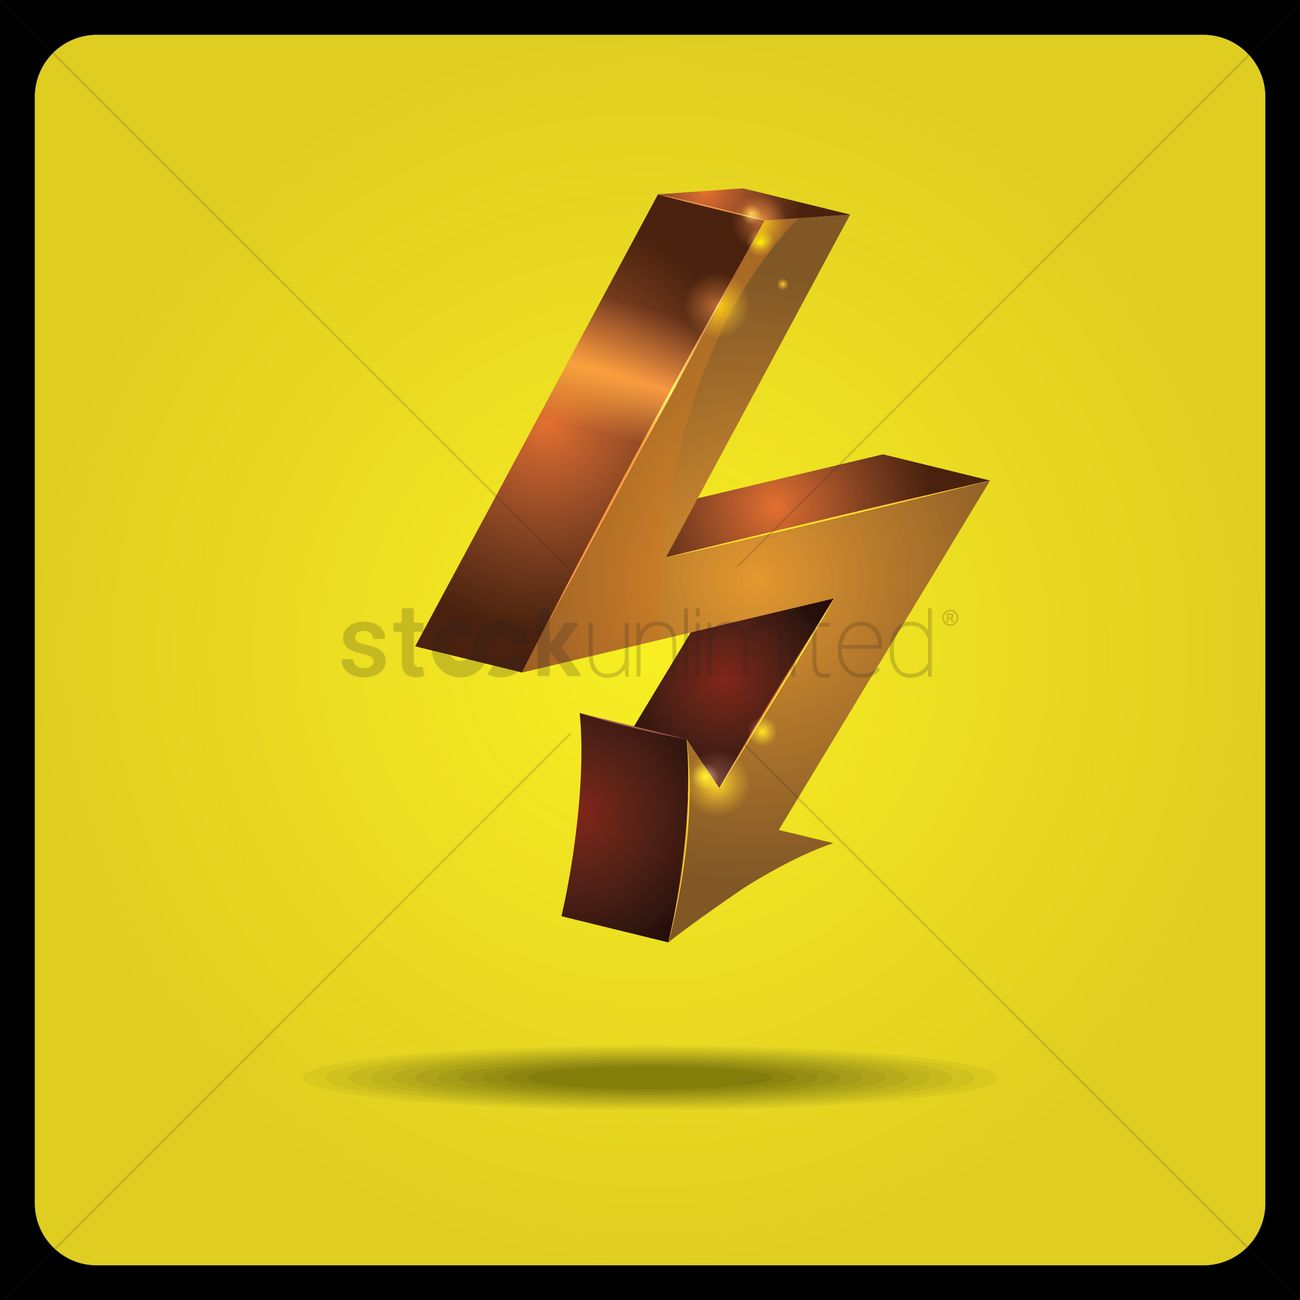 High voltage sign vector image 1608154 stockunlimited high voltage sign vector graphic buycottarizona Images